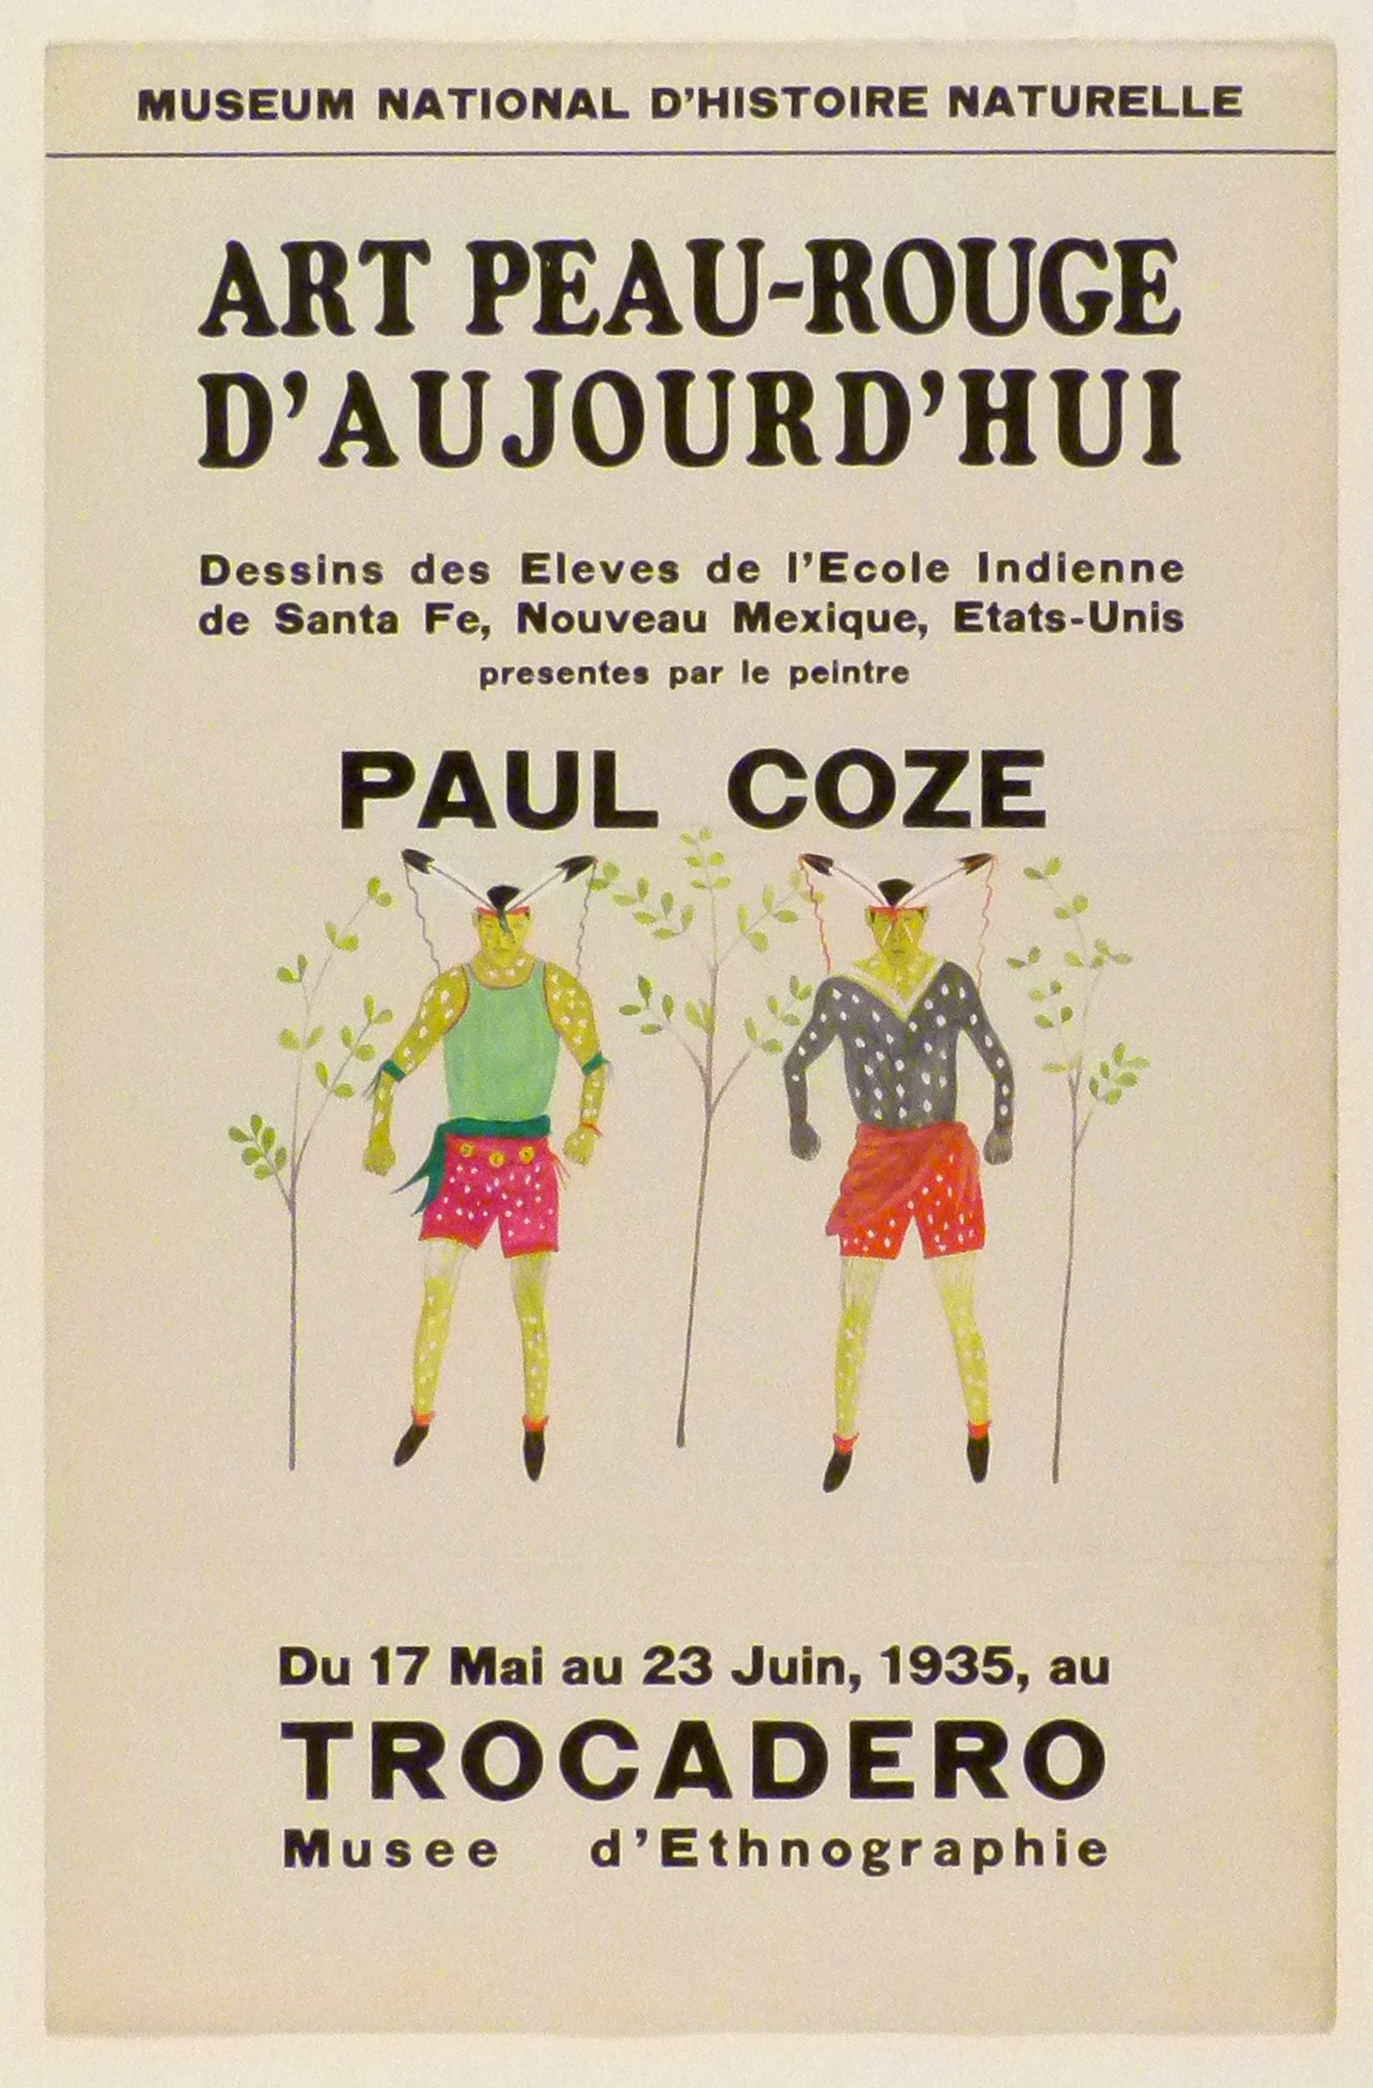 Art Exhibition Poster with painting of two figures facing the viewer, surrounded by vertical branches with green leaves. They wear brightly colored shorts and shirts with feathers on their heads and are covered with white spots.